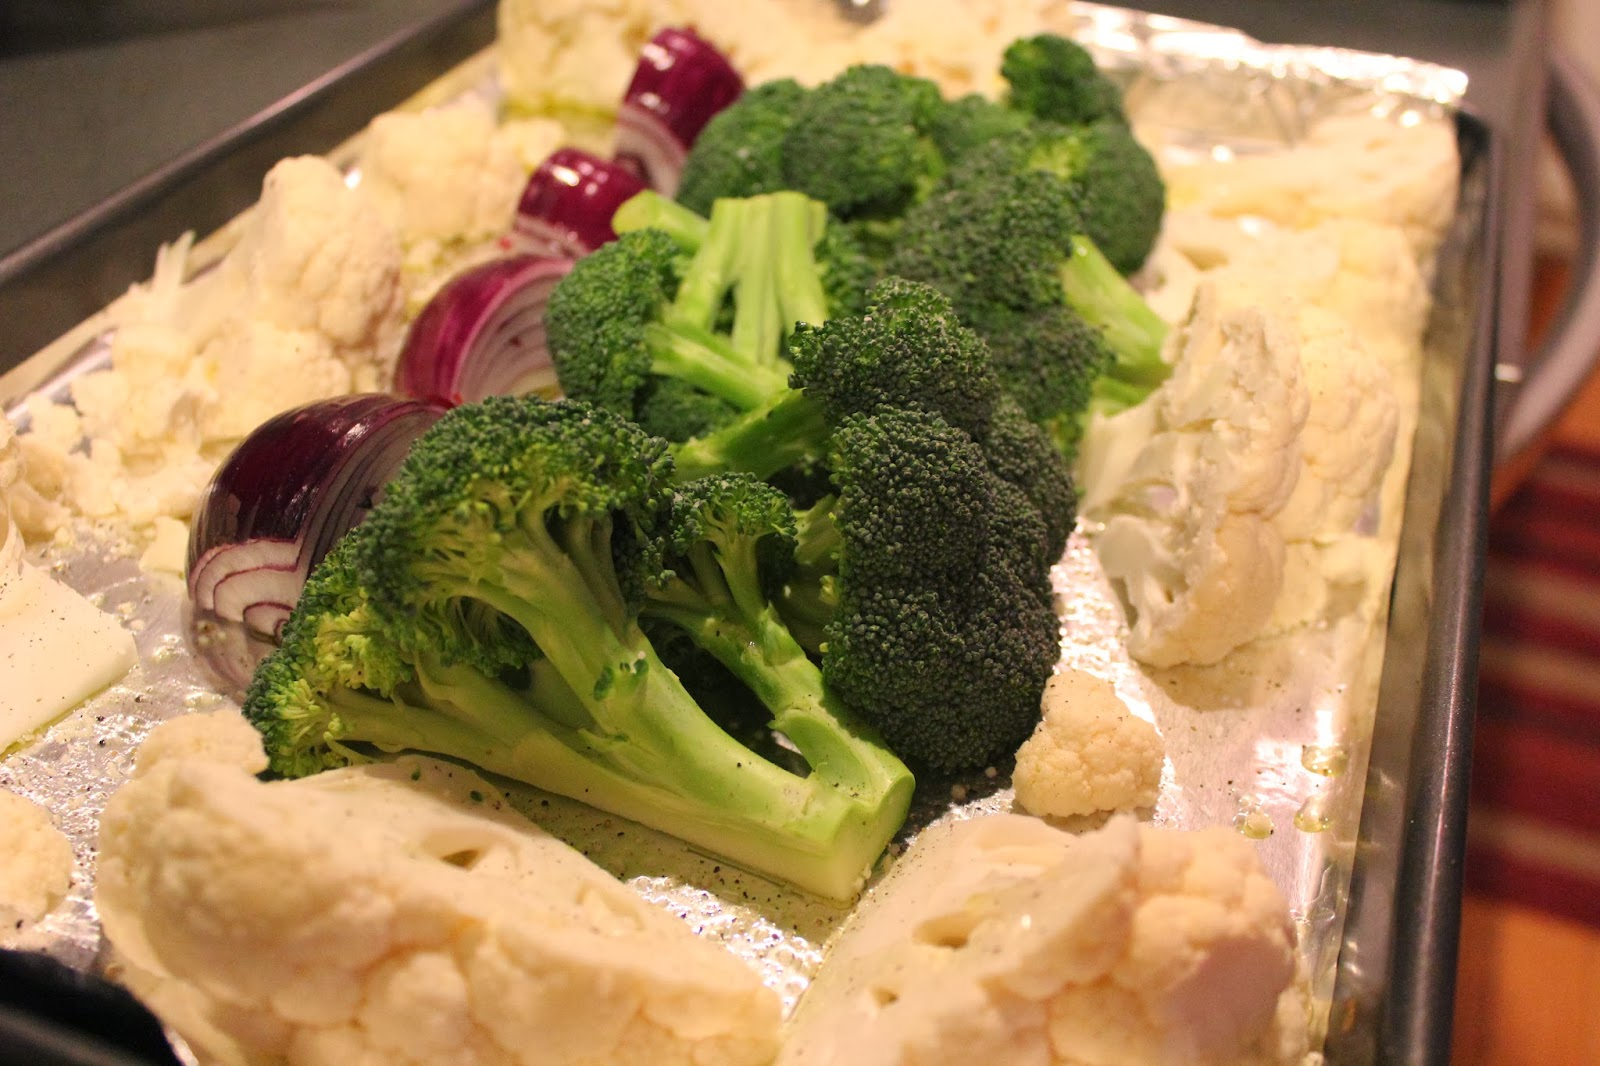 Cauliflower, broccoli, and shallots